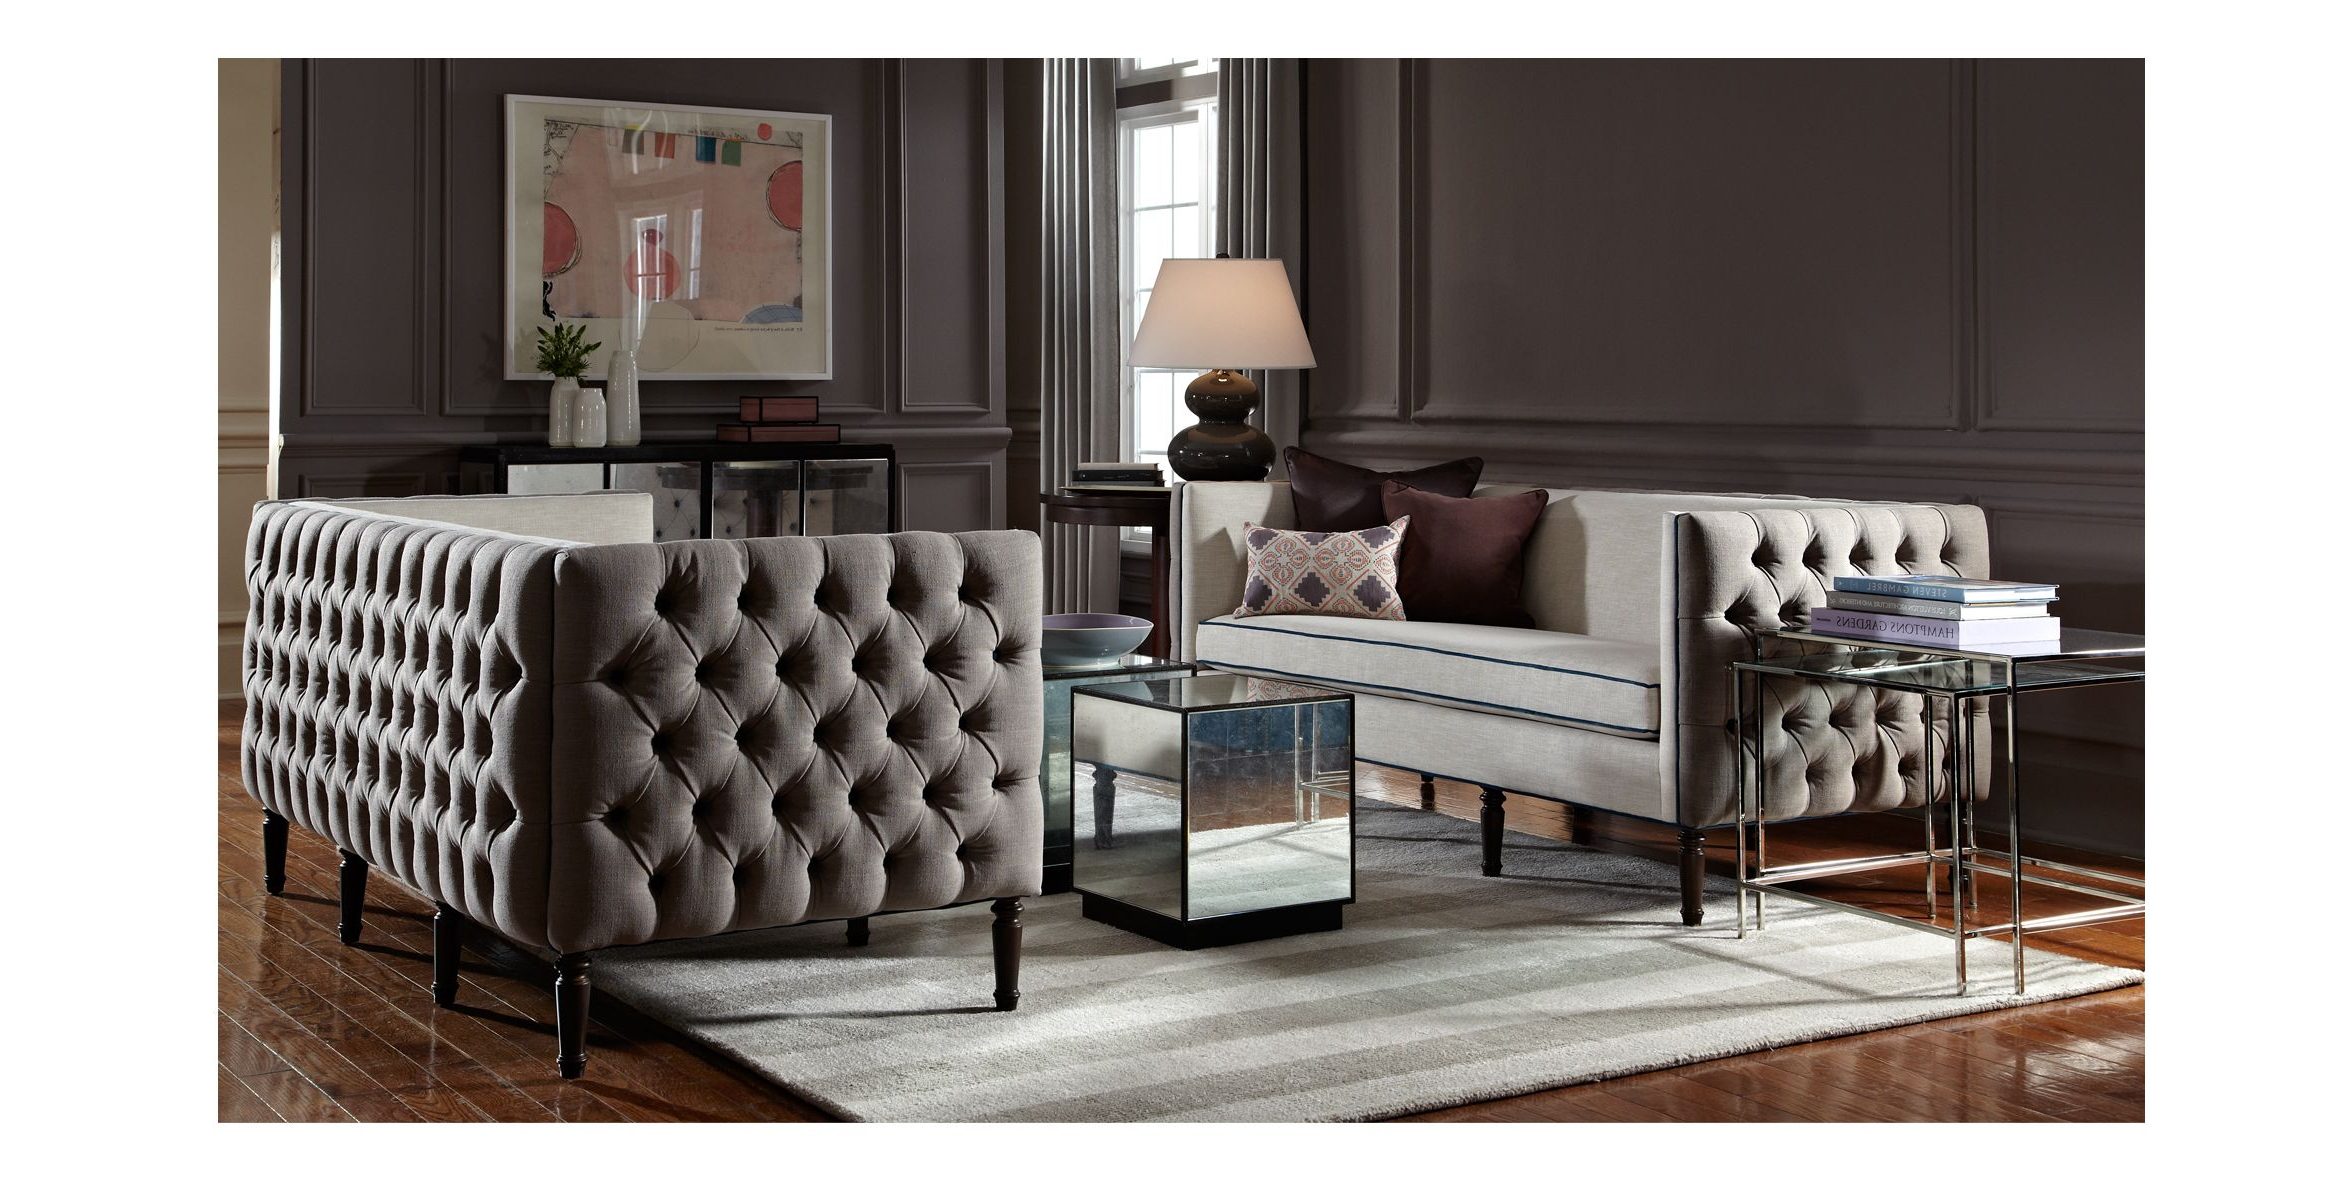 Modern Tufted Sofa – Google Search | Turn Of The Century Moderne In Parsons Travertine Top & Dark Steel Base 48X16 Console Tables (Gallery 13 of 20)